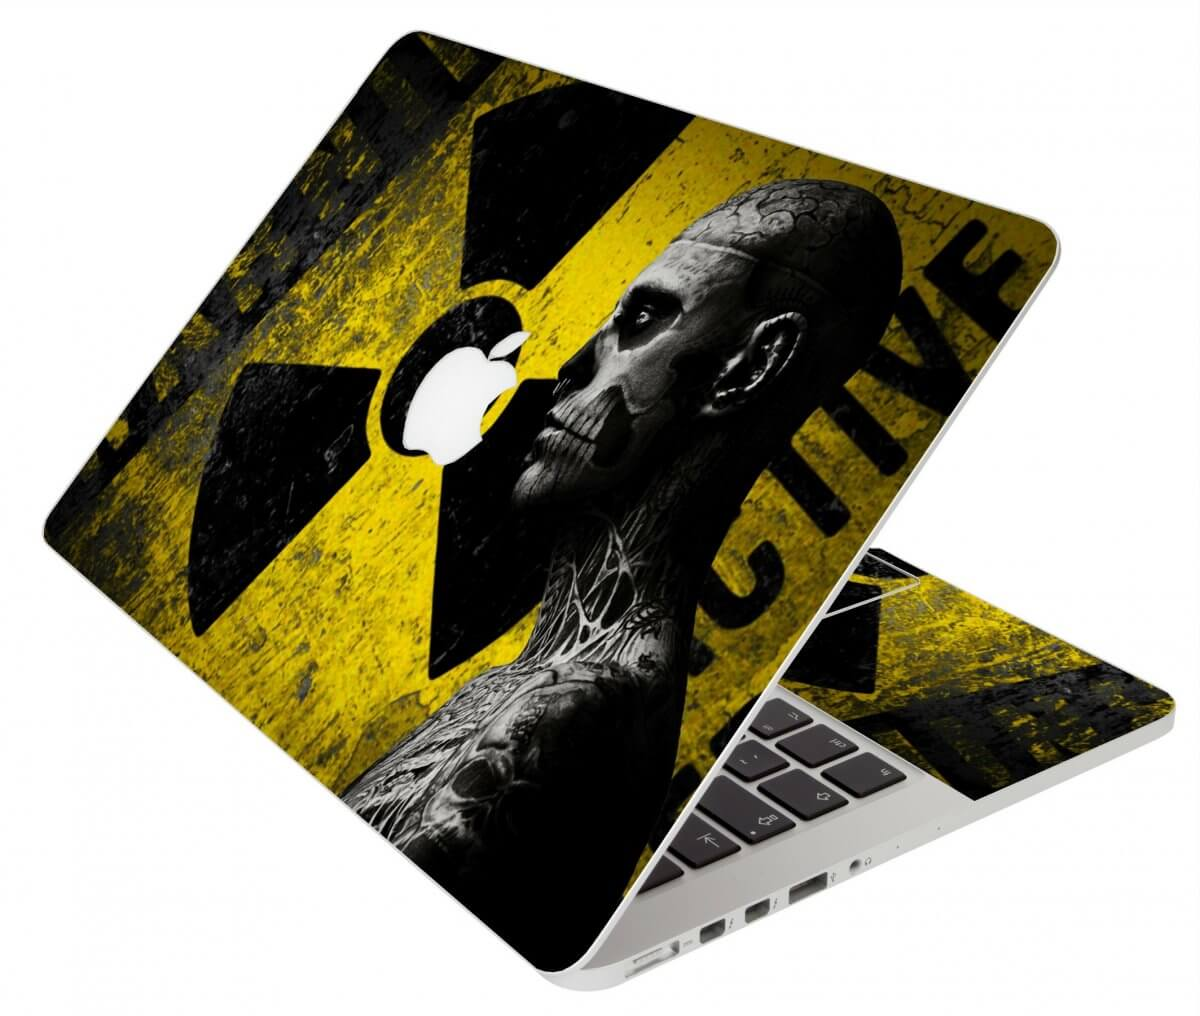 BIOHAZARD ZOMBIE MacBook Pro 12 Retina A1534 Laptop Skin